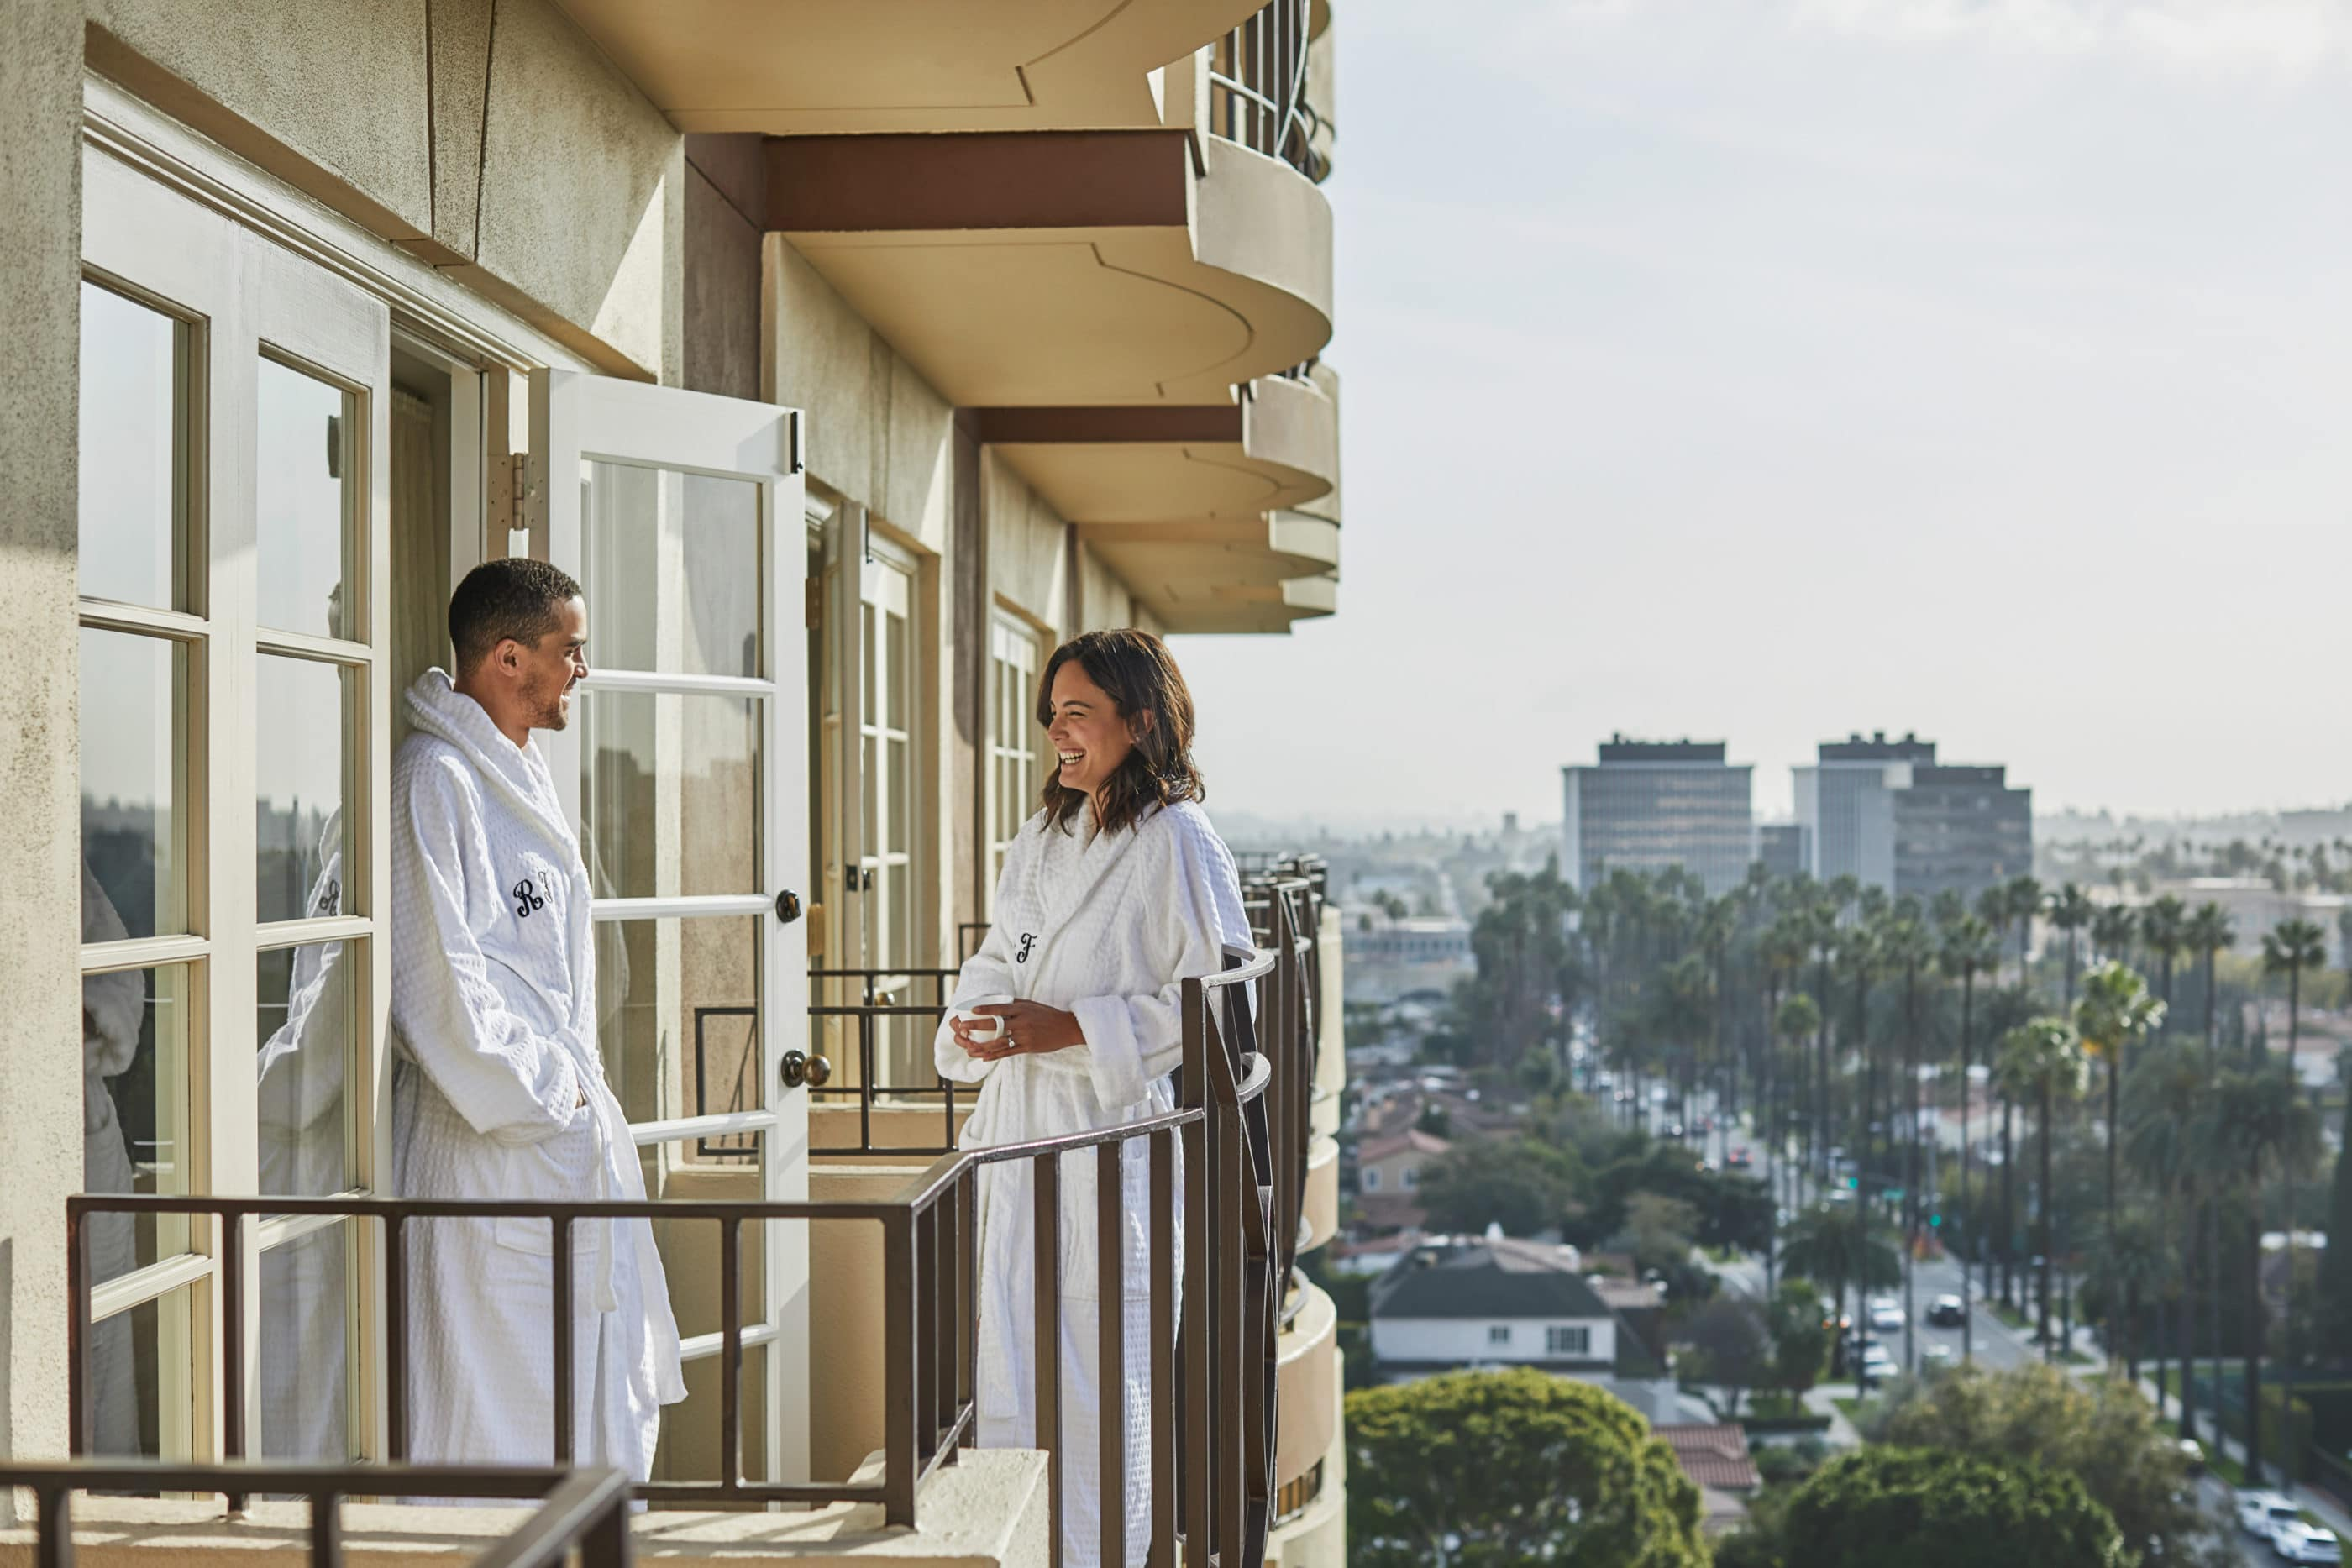 A couple in bathrobes chats while standing on a hotel balcony, with views of Los Angeles in the background.